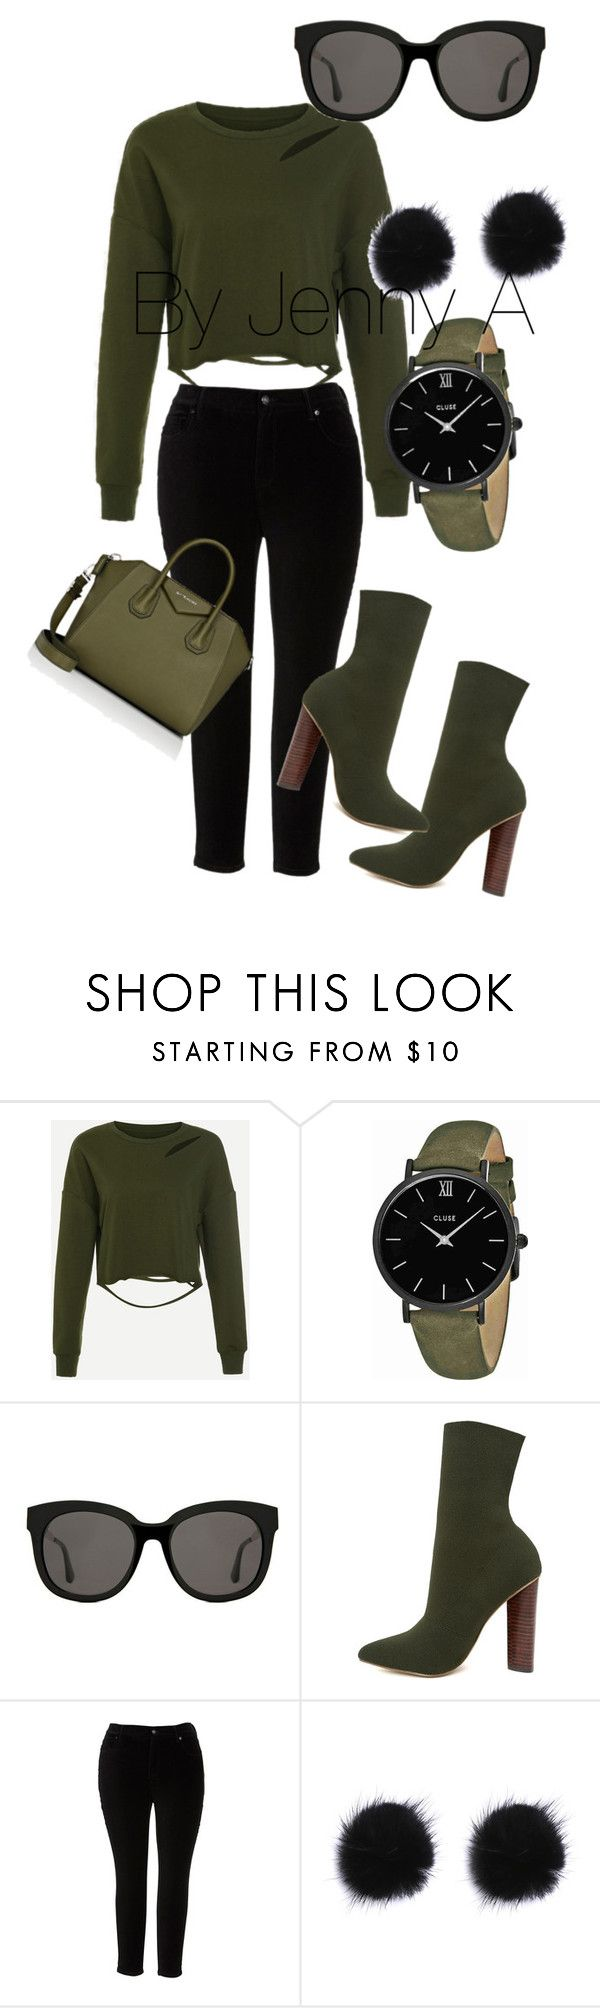 """Olive you"" by jen-amaya ❤ liked on Polyvore featuring CLUSE, Gentle Monster, Steve Madden, Melissa McCarthy Seven7, Givenchy and plus size clothing"